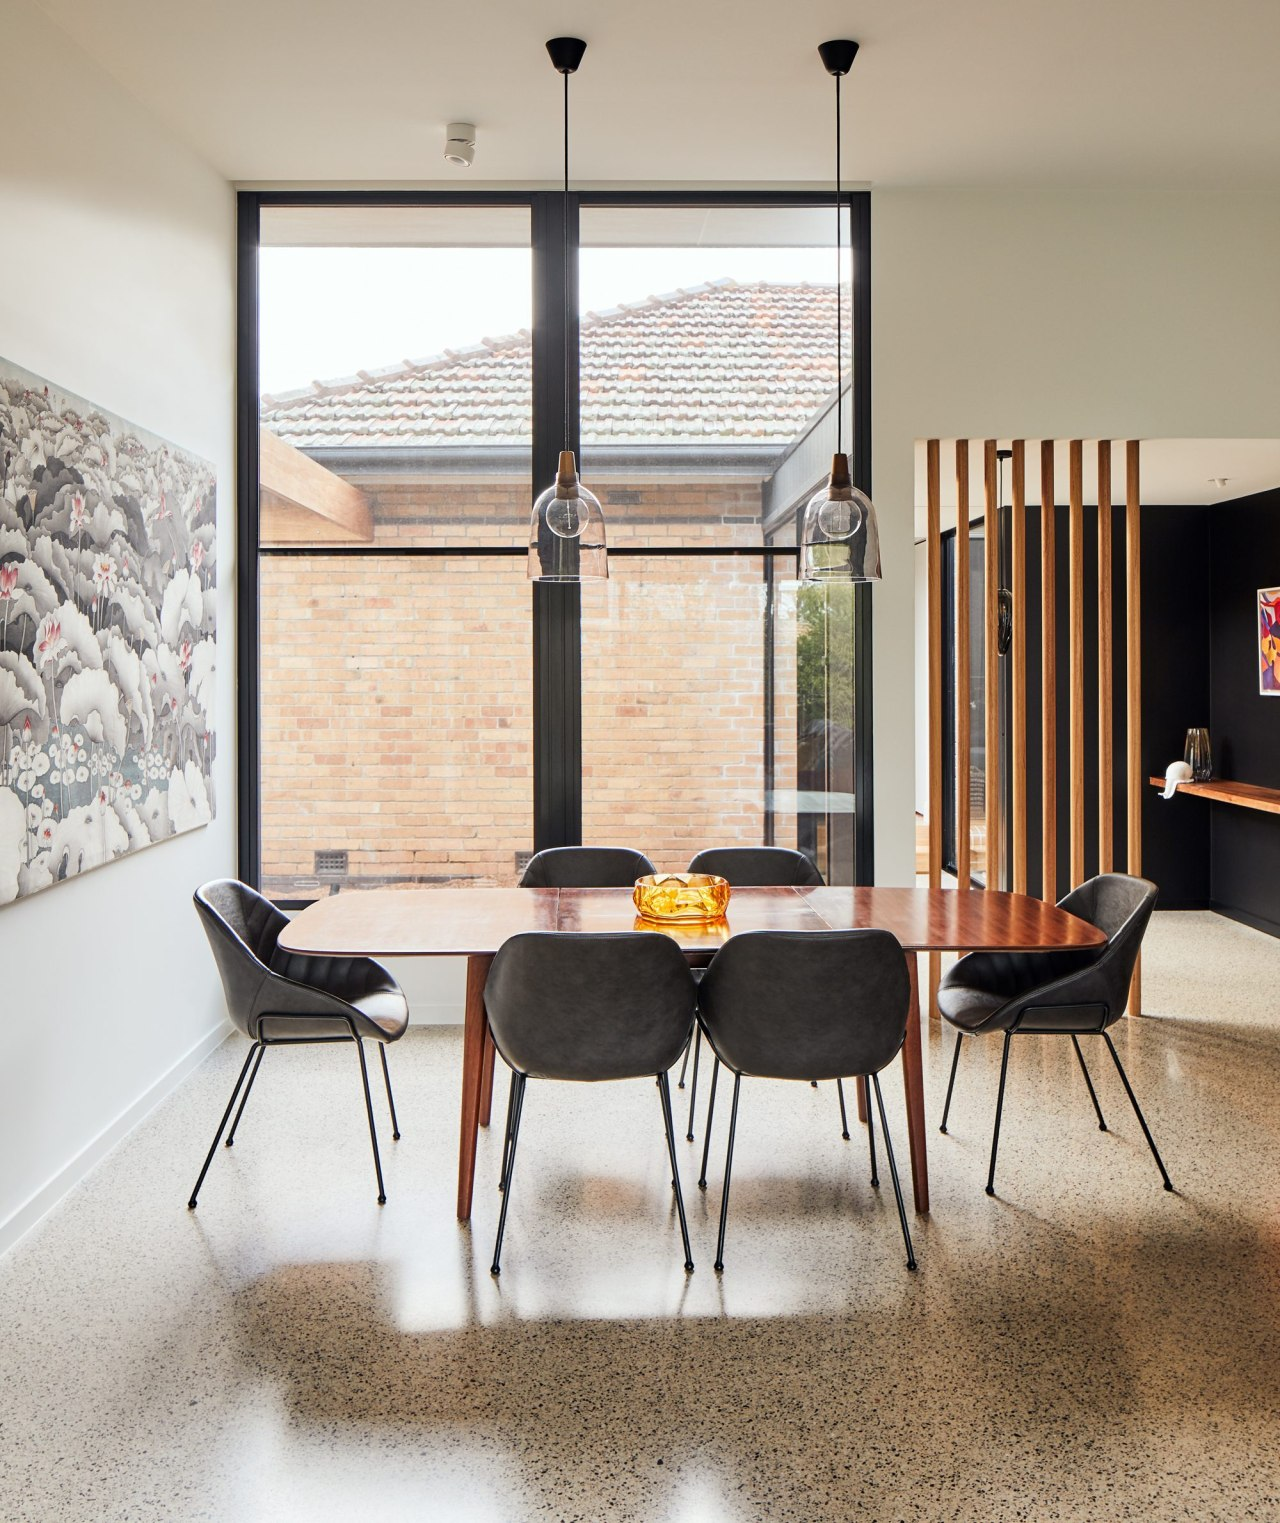 In a home renovation that dovetails modern with